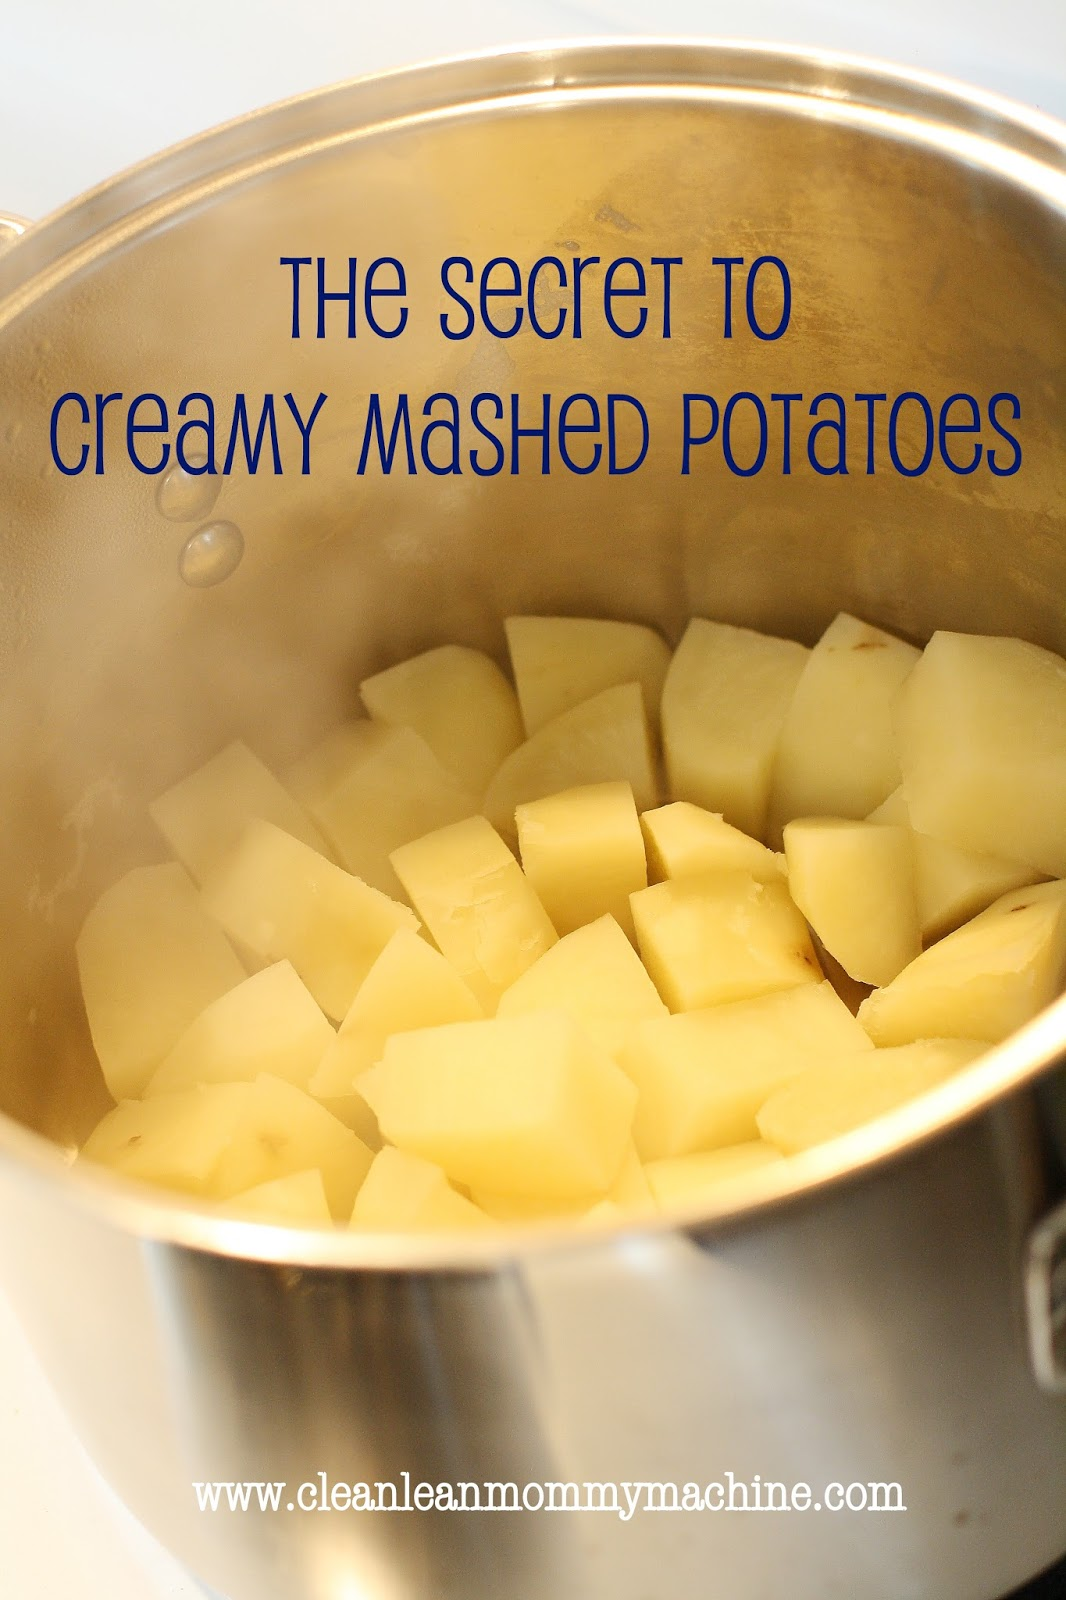 Clean Lean Mommy Machine: Tip for Tuesday: Perfect Mashed Potatoes